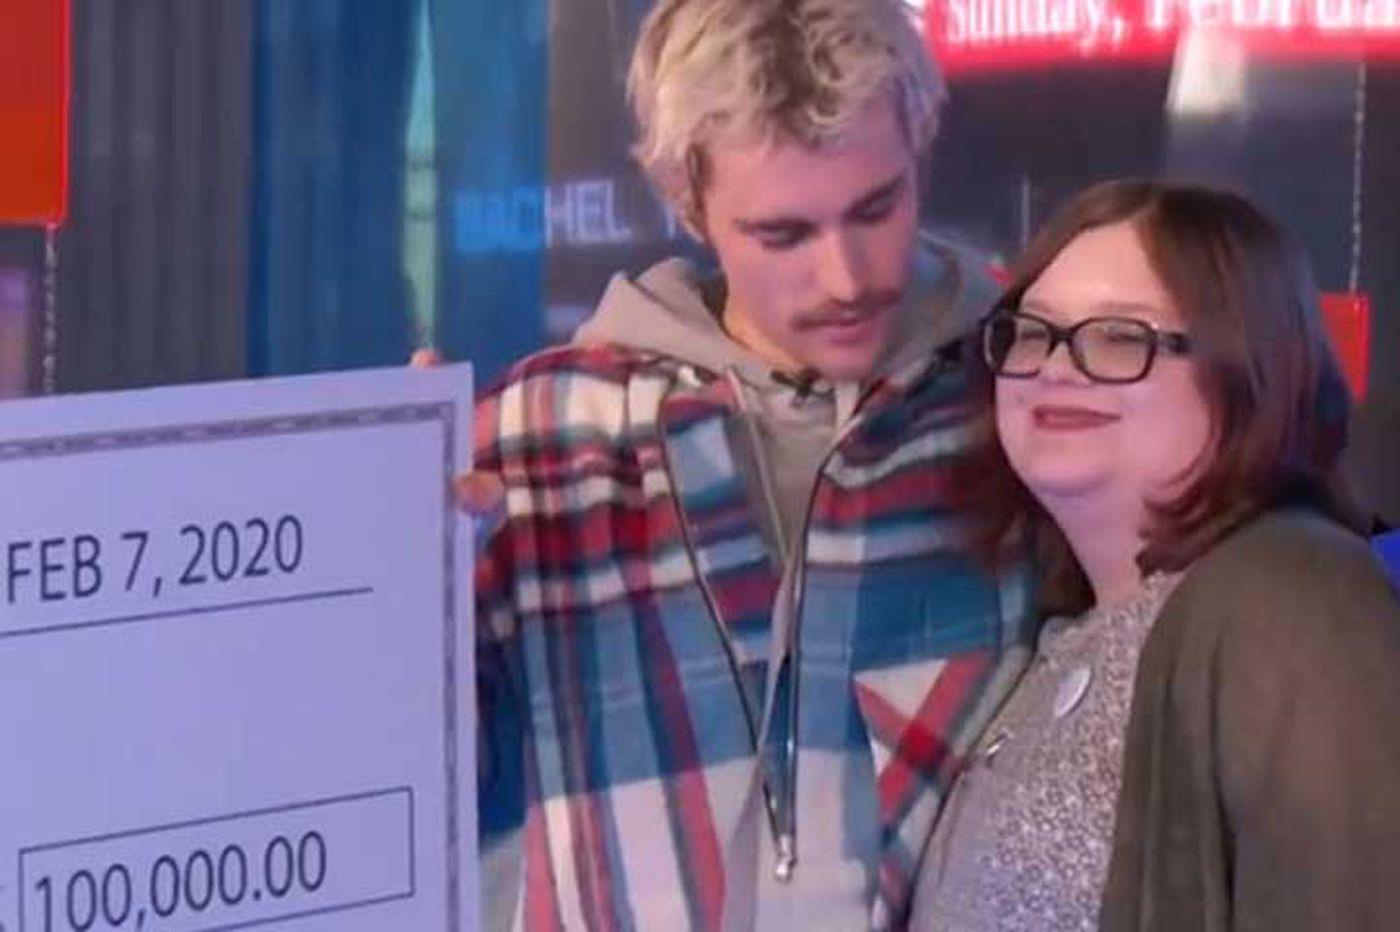 ic: Bieber presenting cheque to Julie Coker, Source: Stockton University